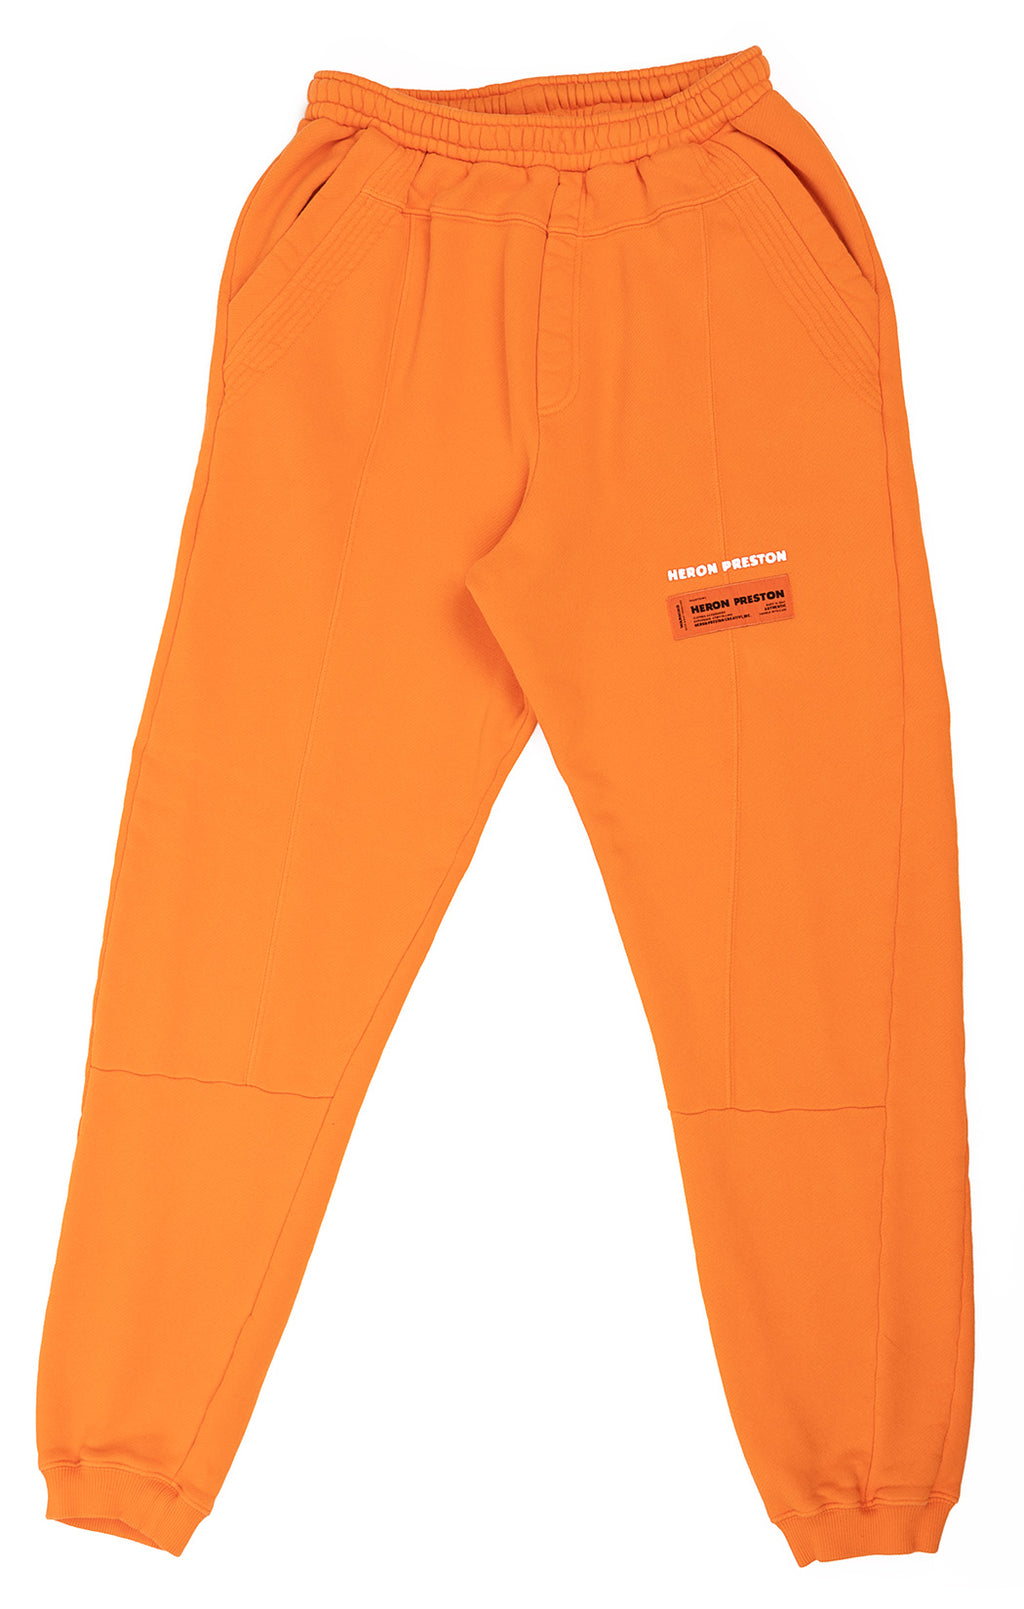 HERON PRESTON Sweats Size: Large